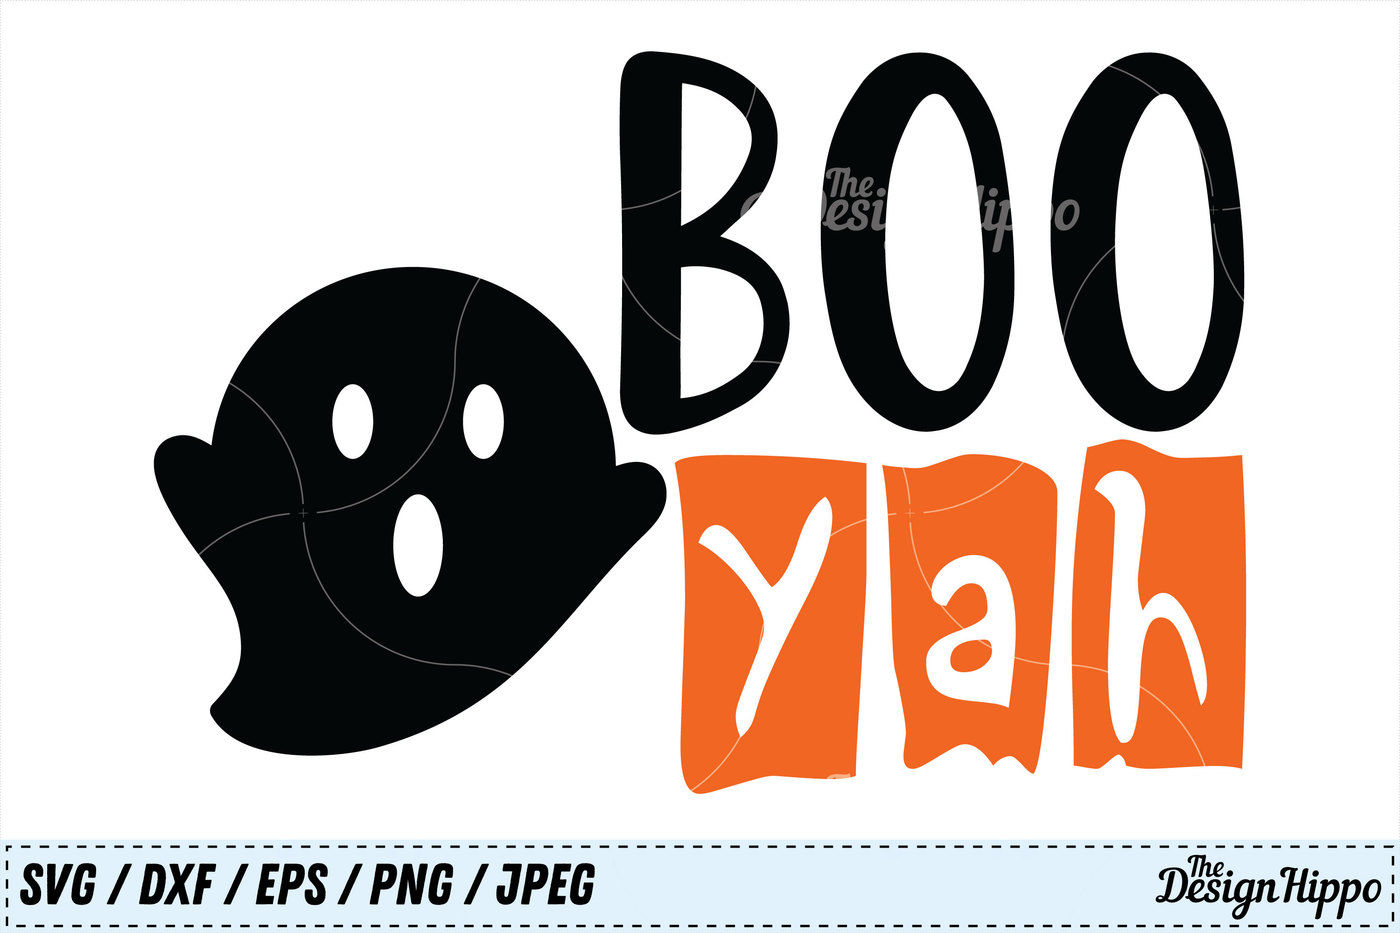 Boo Yah Svg Halloween Svg Boo Svg Kids Svg Ghost Svg Png Cut